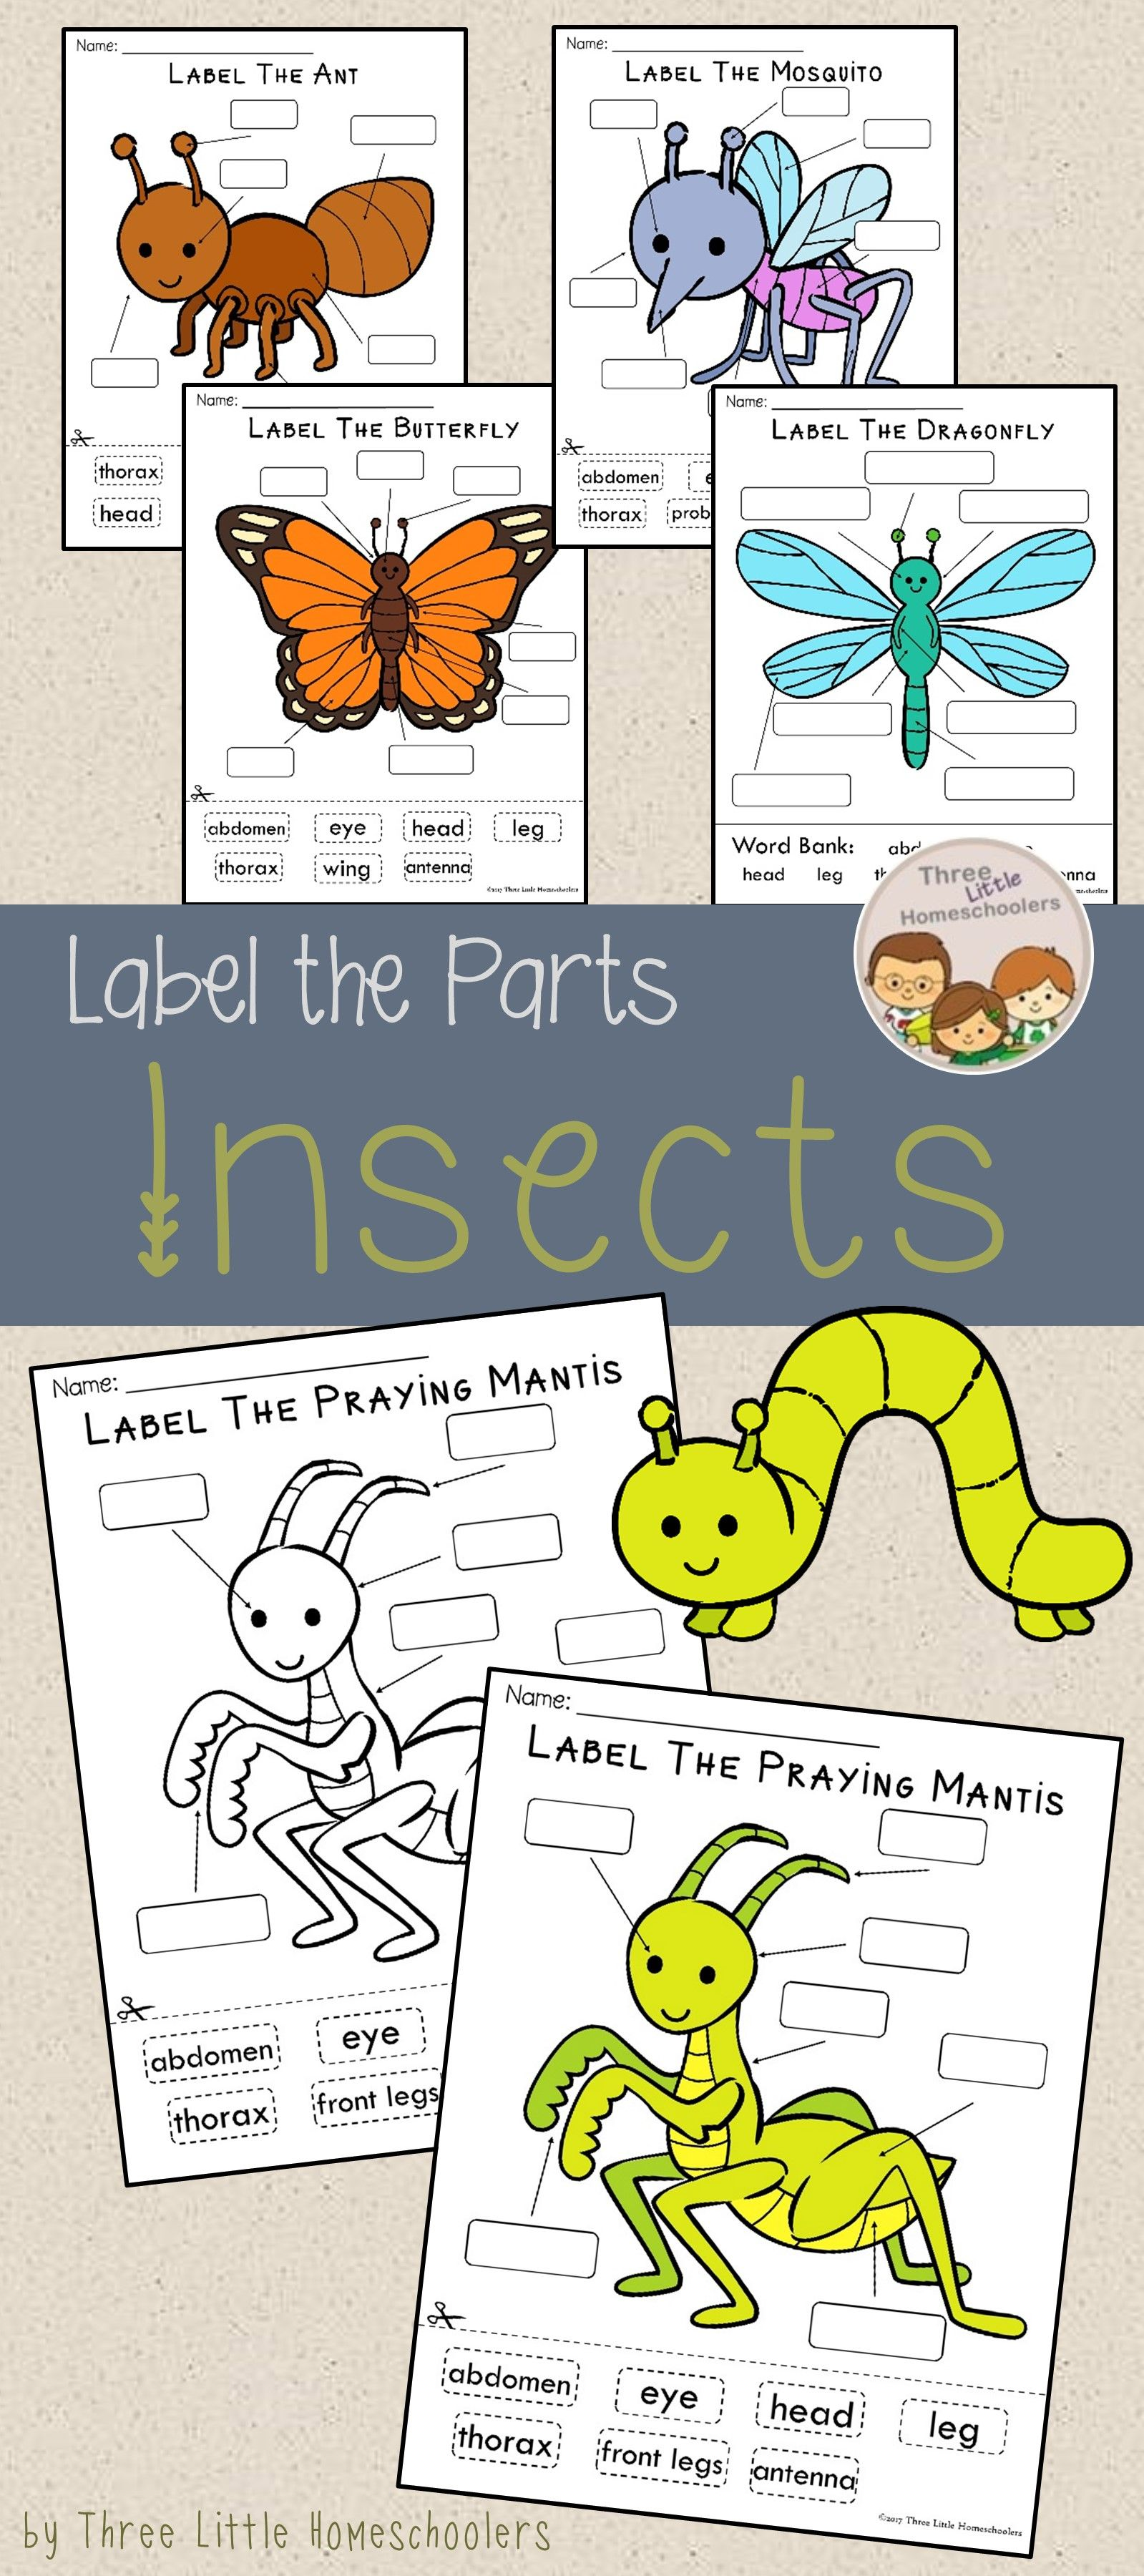 Insects Bugs And Spiders Labeling Center Activities Blog